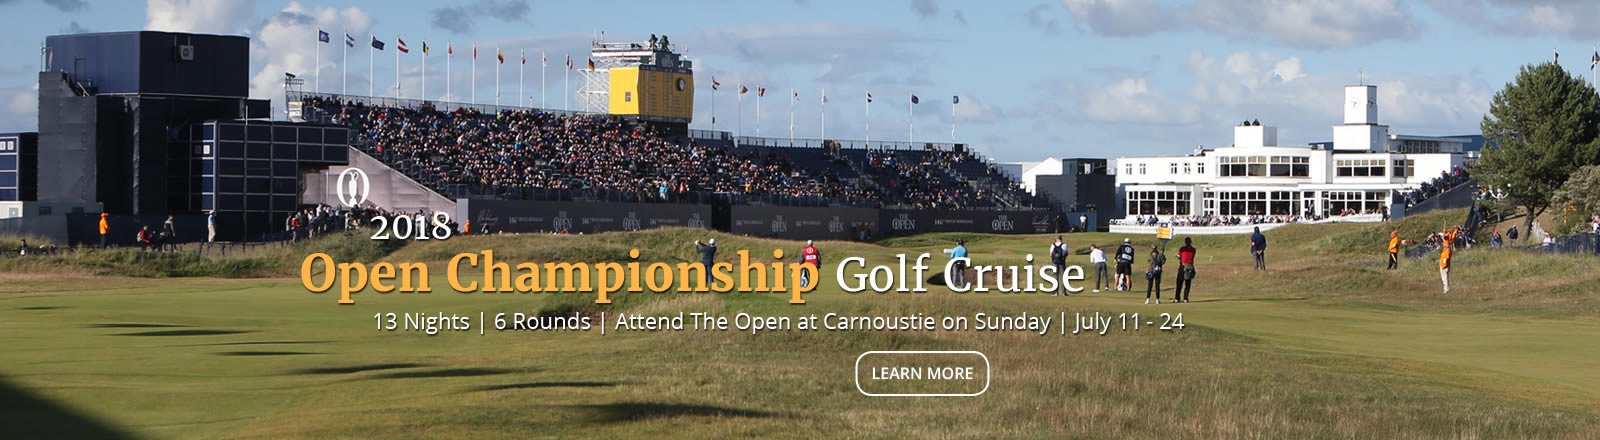 Open Championship Golf Cruise